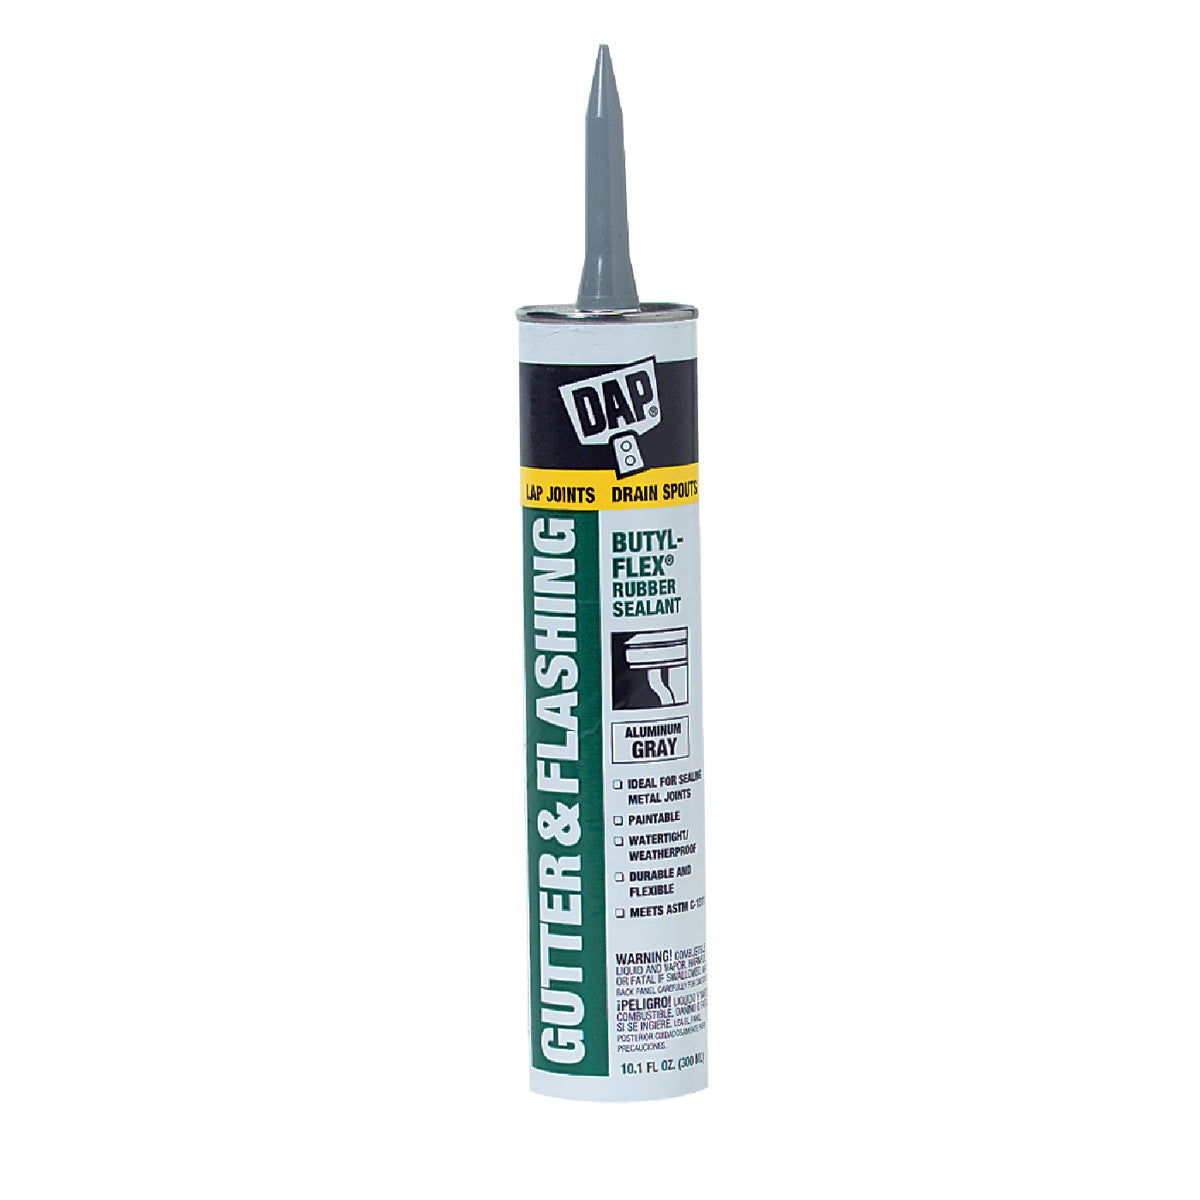 ALUM BUTYL GUTTR SEALANT - 18188 by Dap Inc